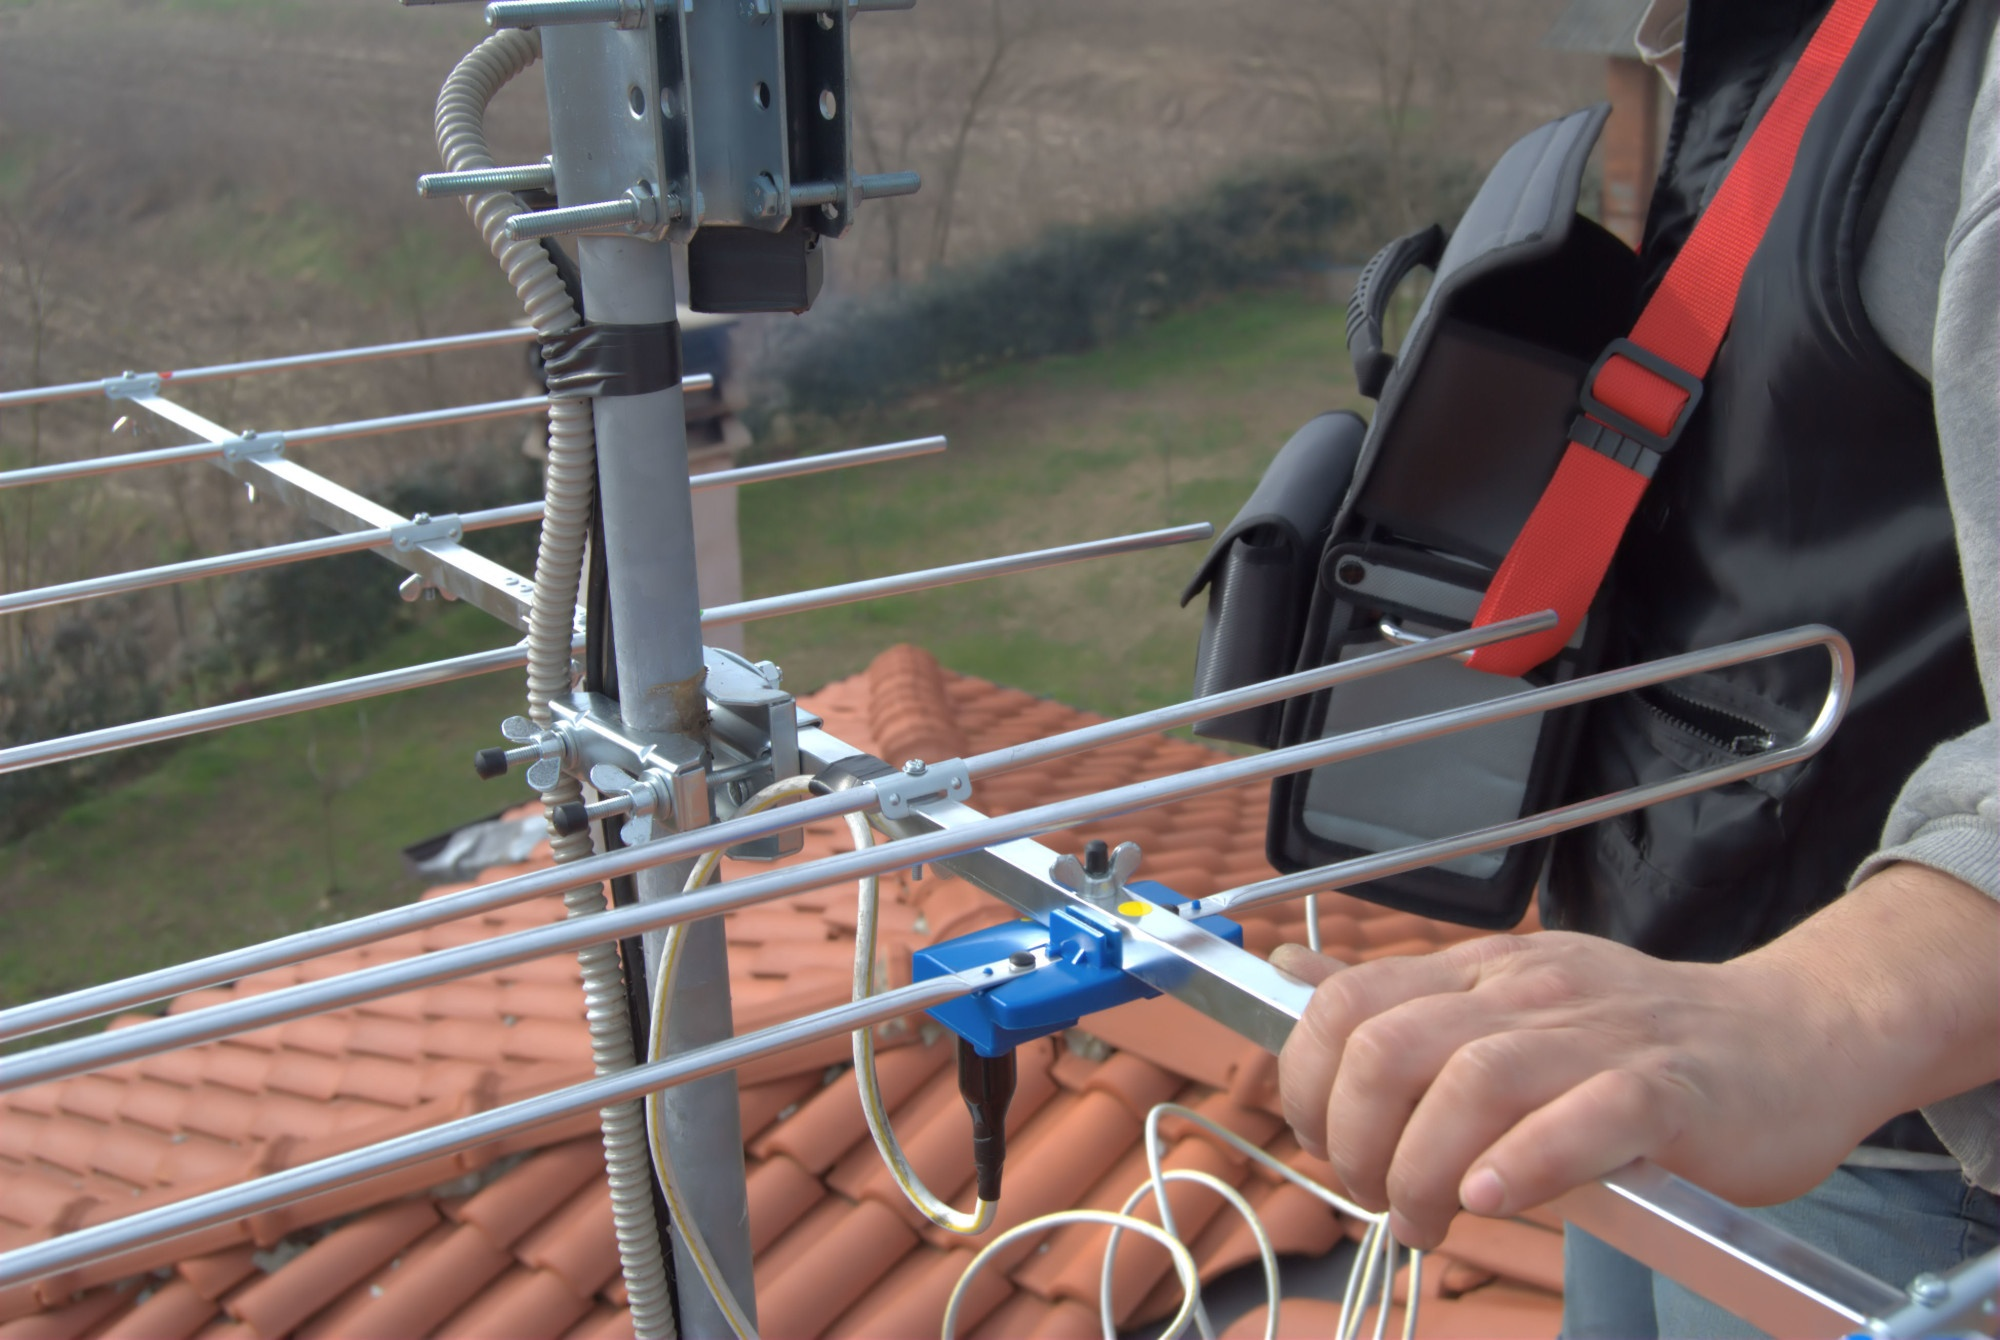 5 Key Things to Know Before Buying an Outdoor Antenna